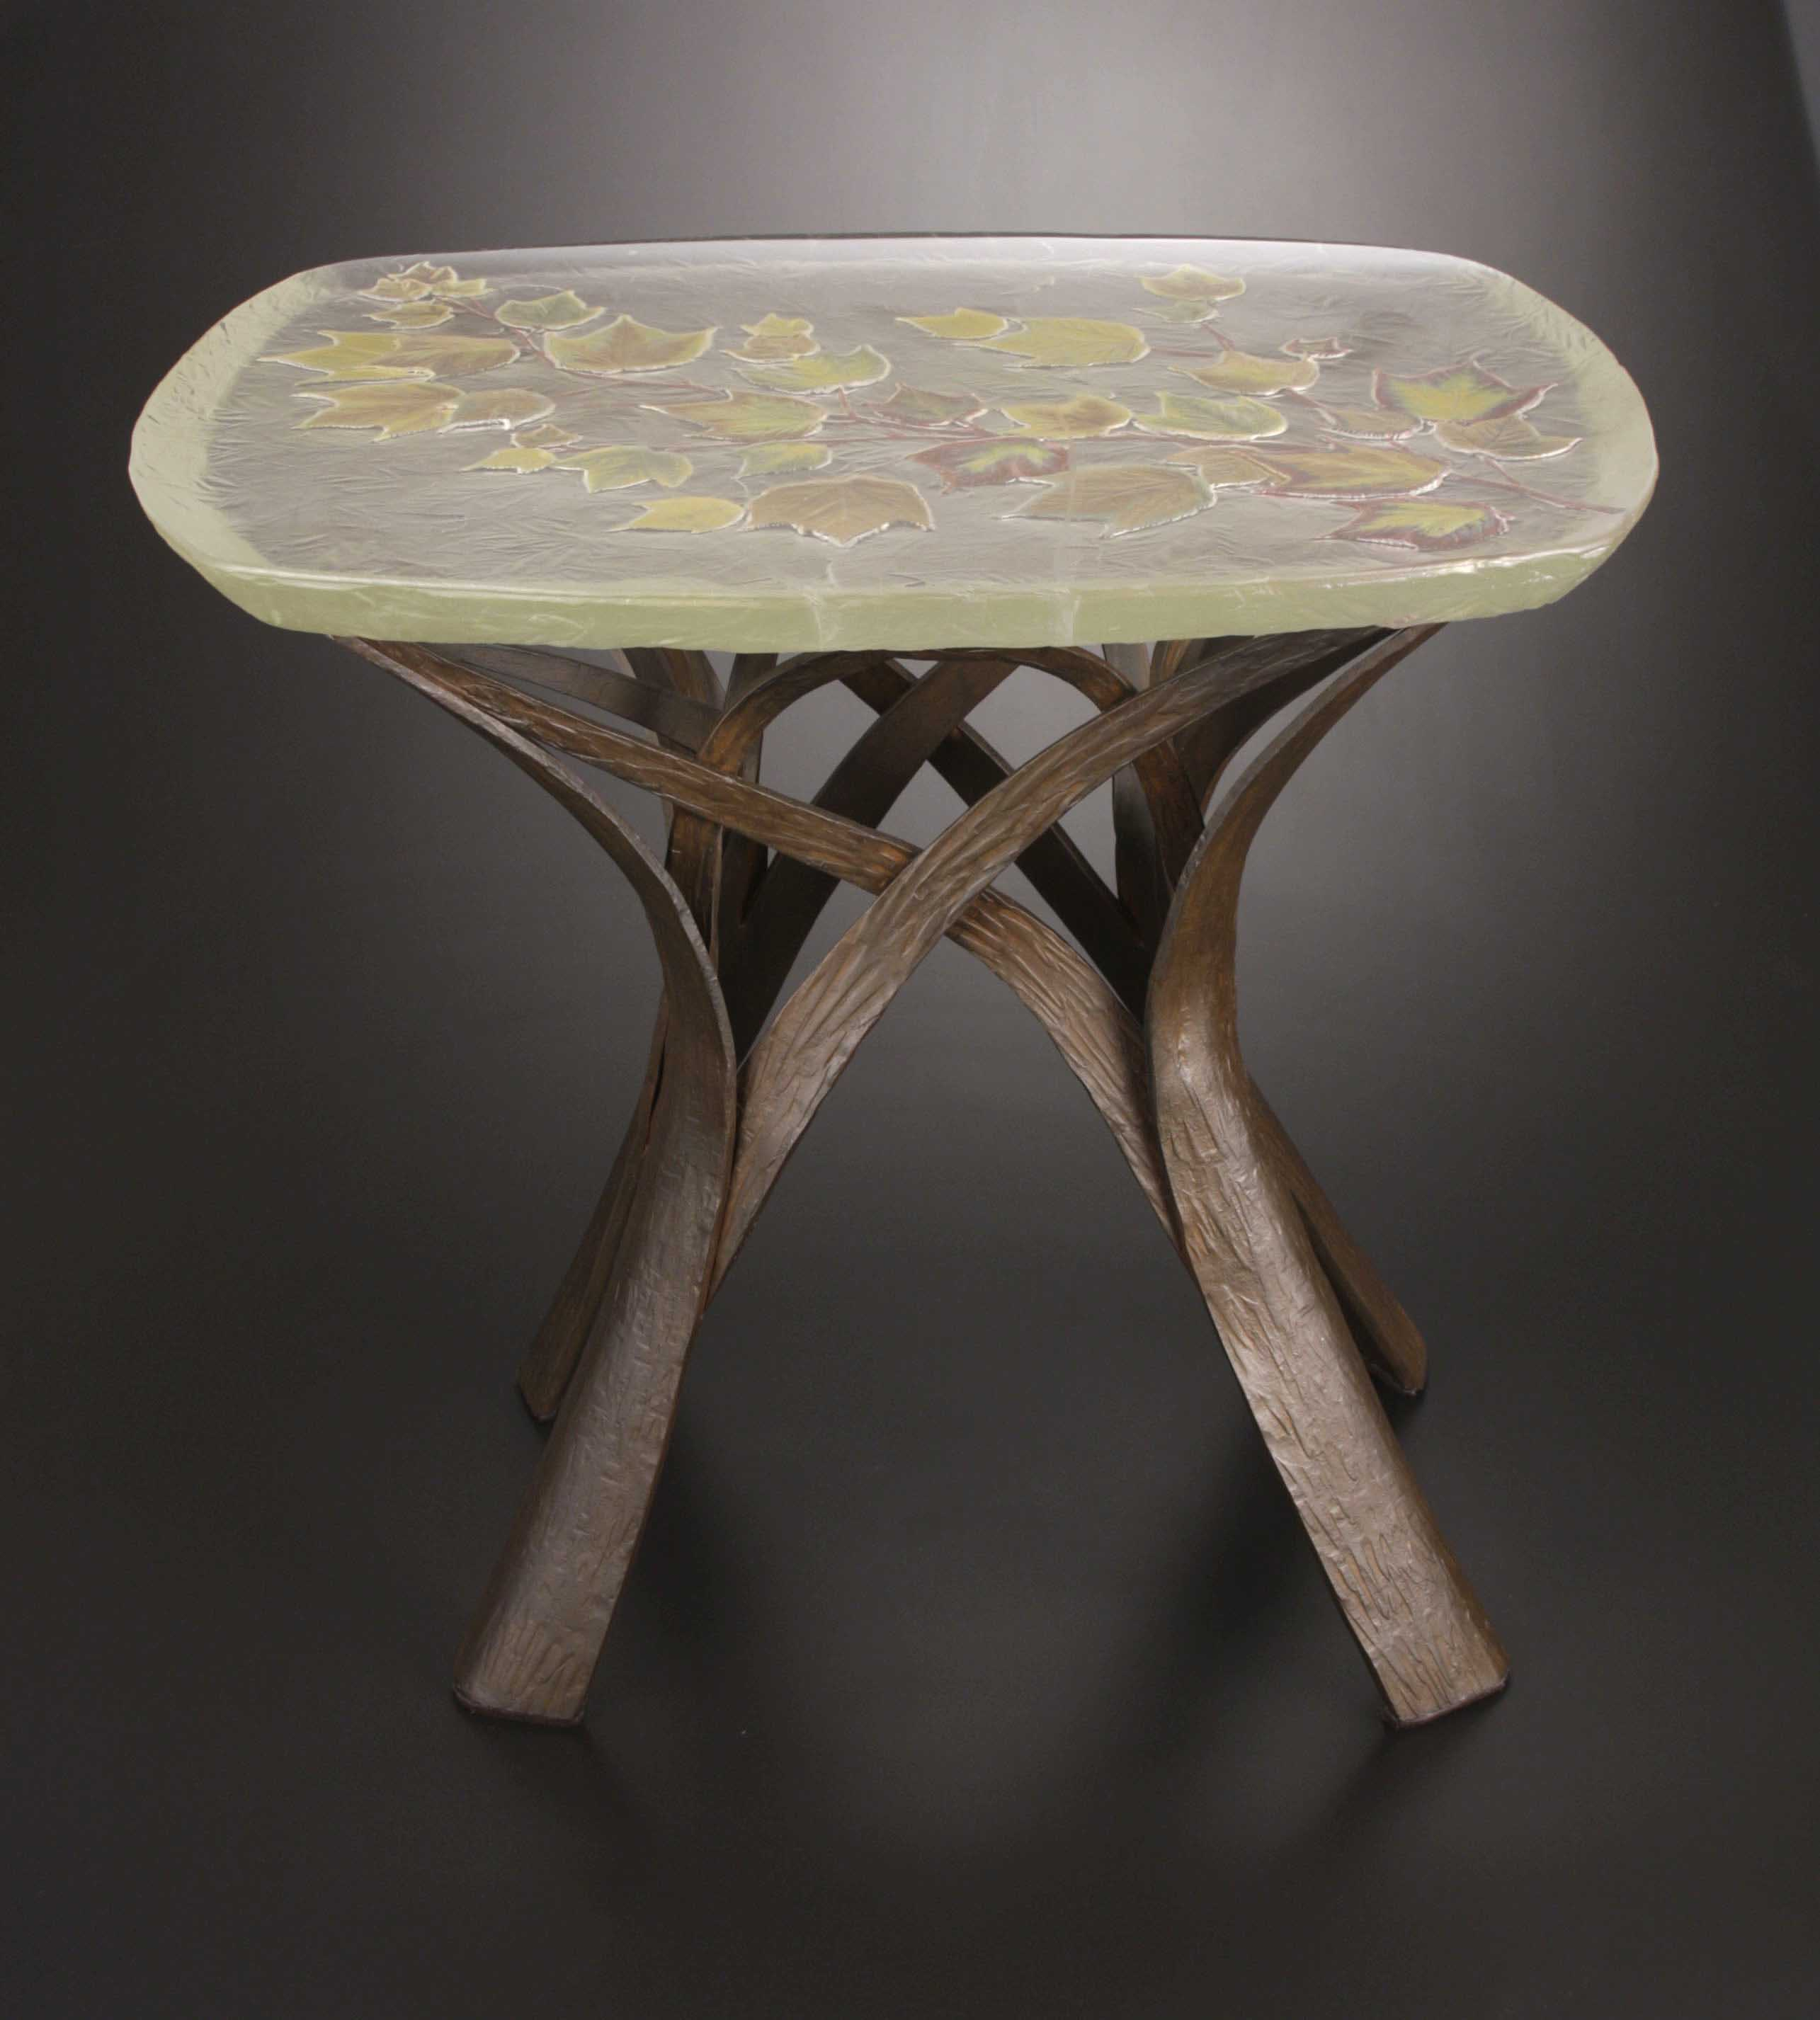 Table with glass top with lustered maple leaves, base of forged steel.